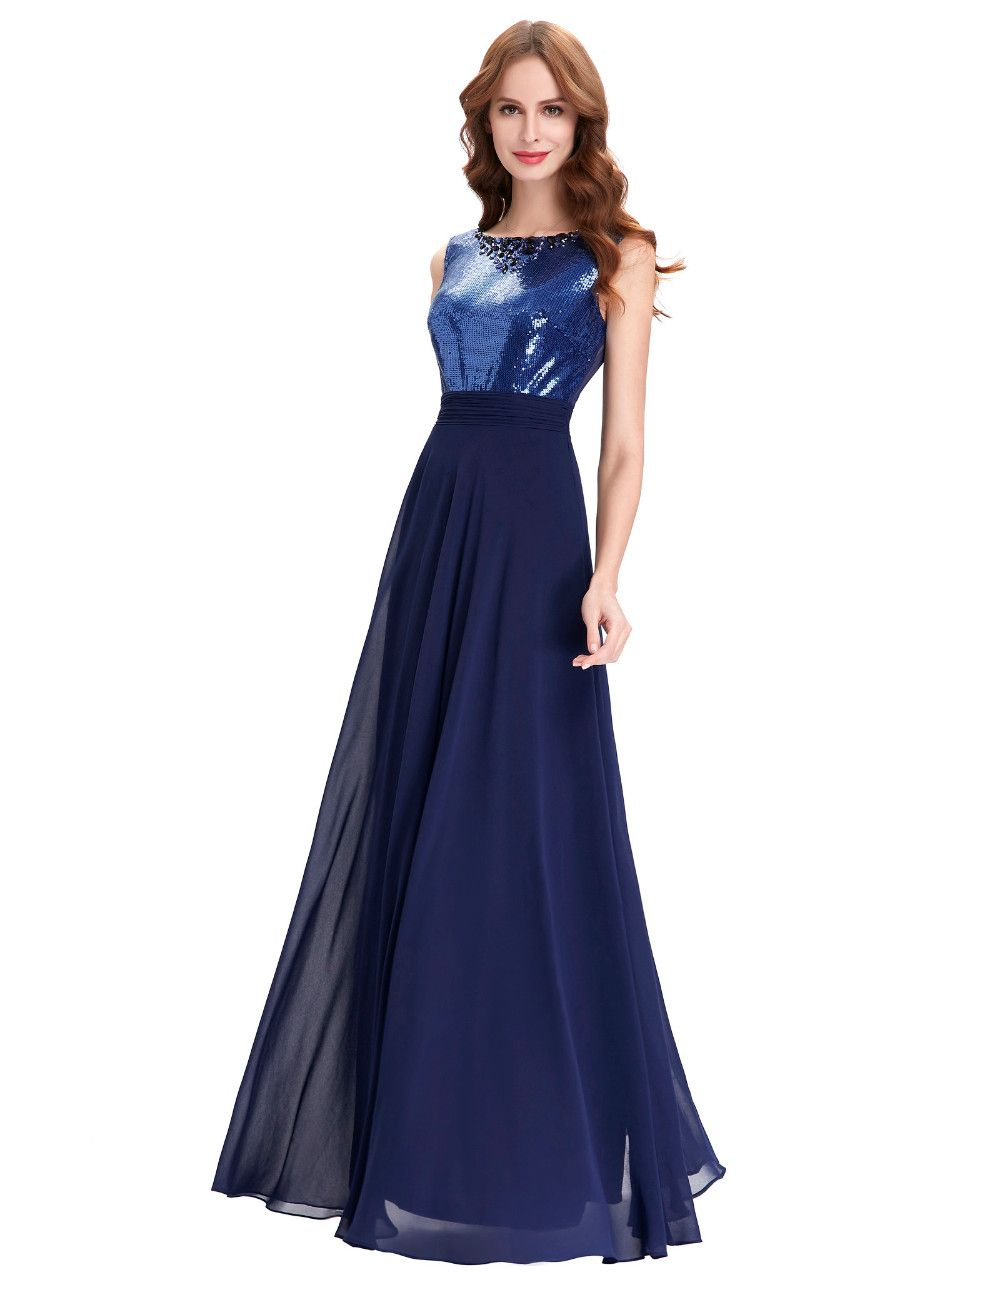 Long navy blue wedding party dress wedding party dresses navy long navy blue wedding party dress ombrellifo Image collections